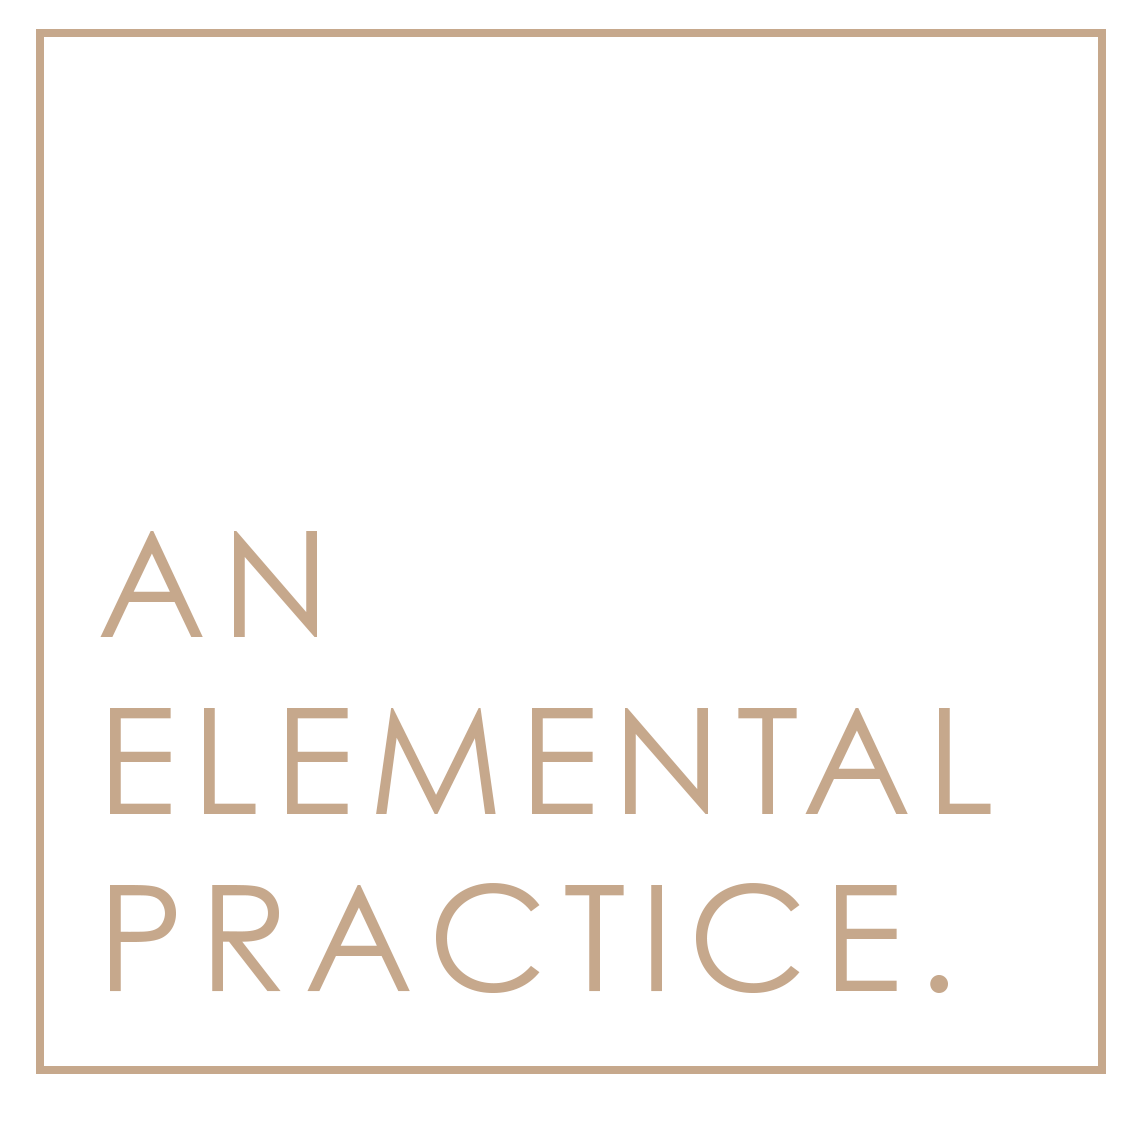 An Elemental Practice. Square Logo